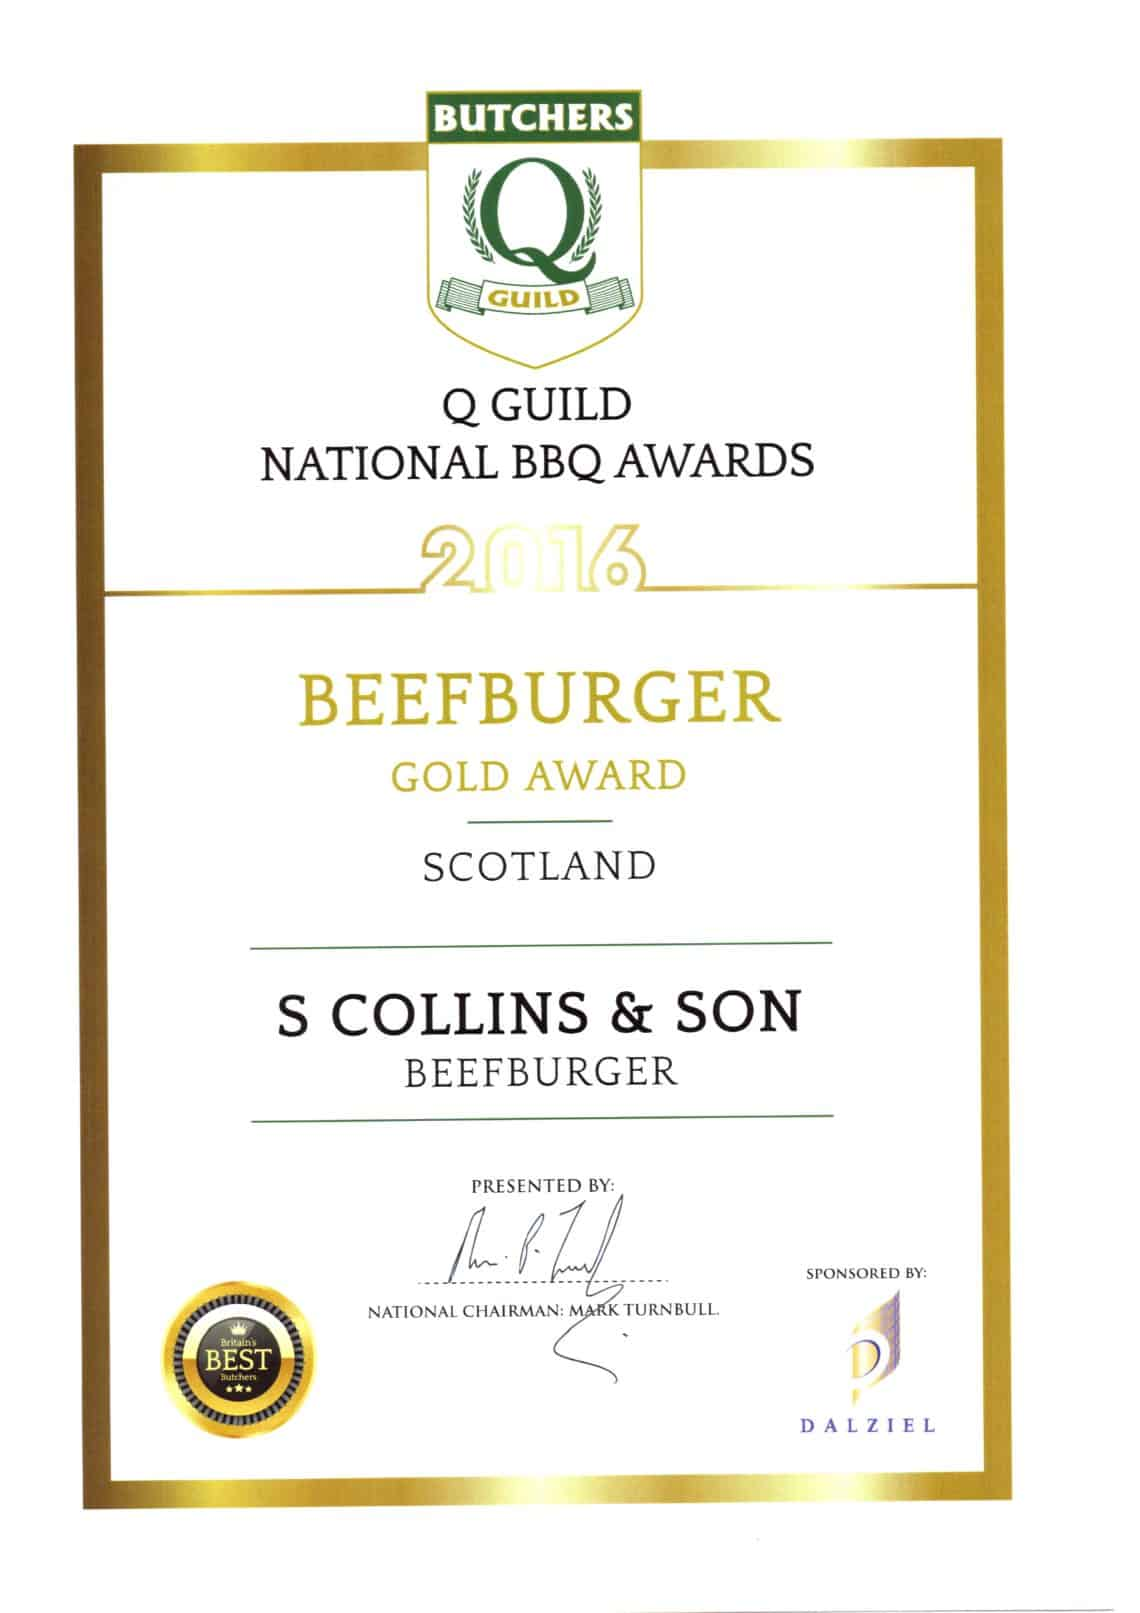 National BBQ Awards 2016: BBQ Beef Burger